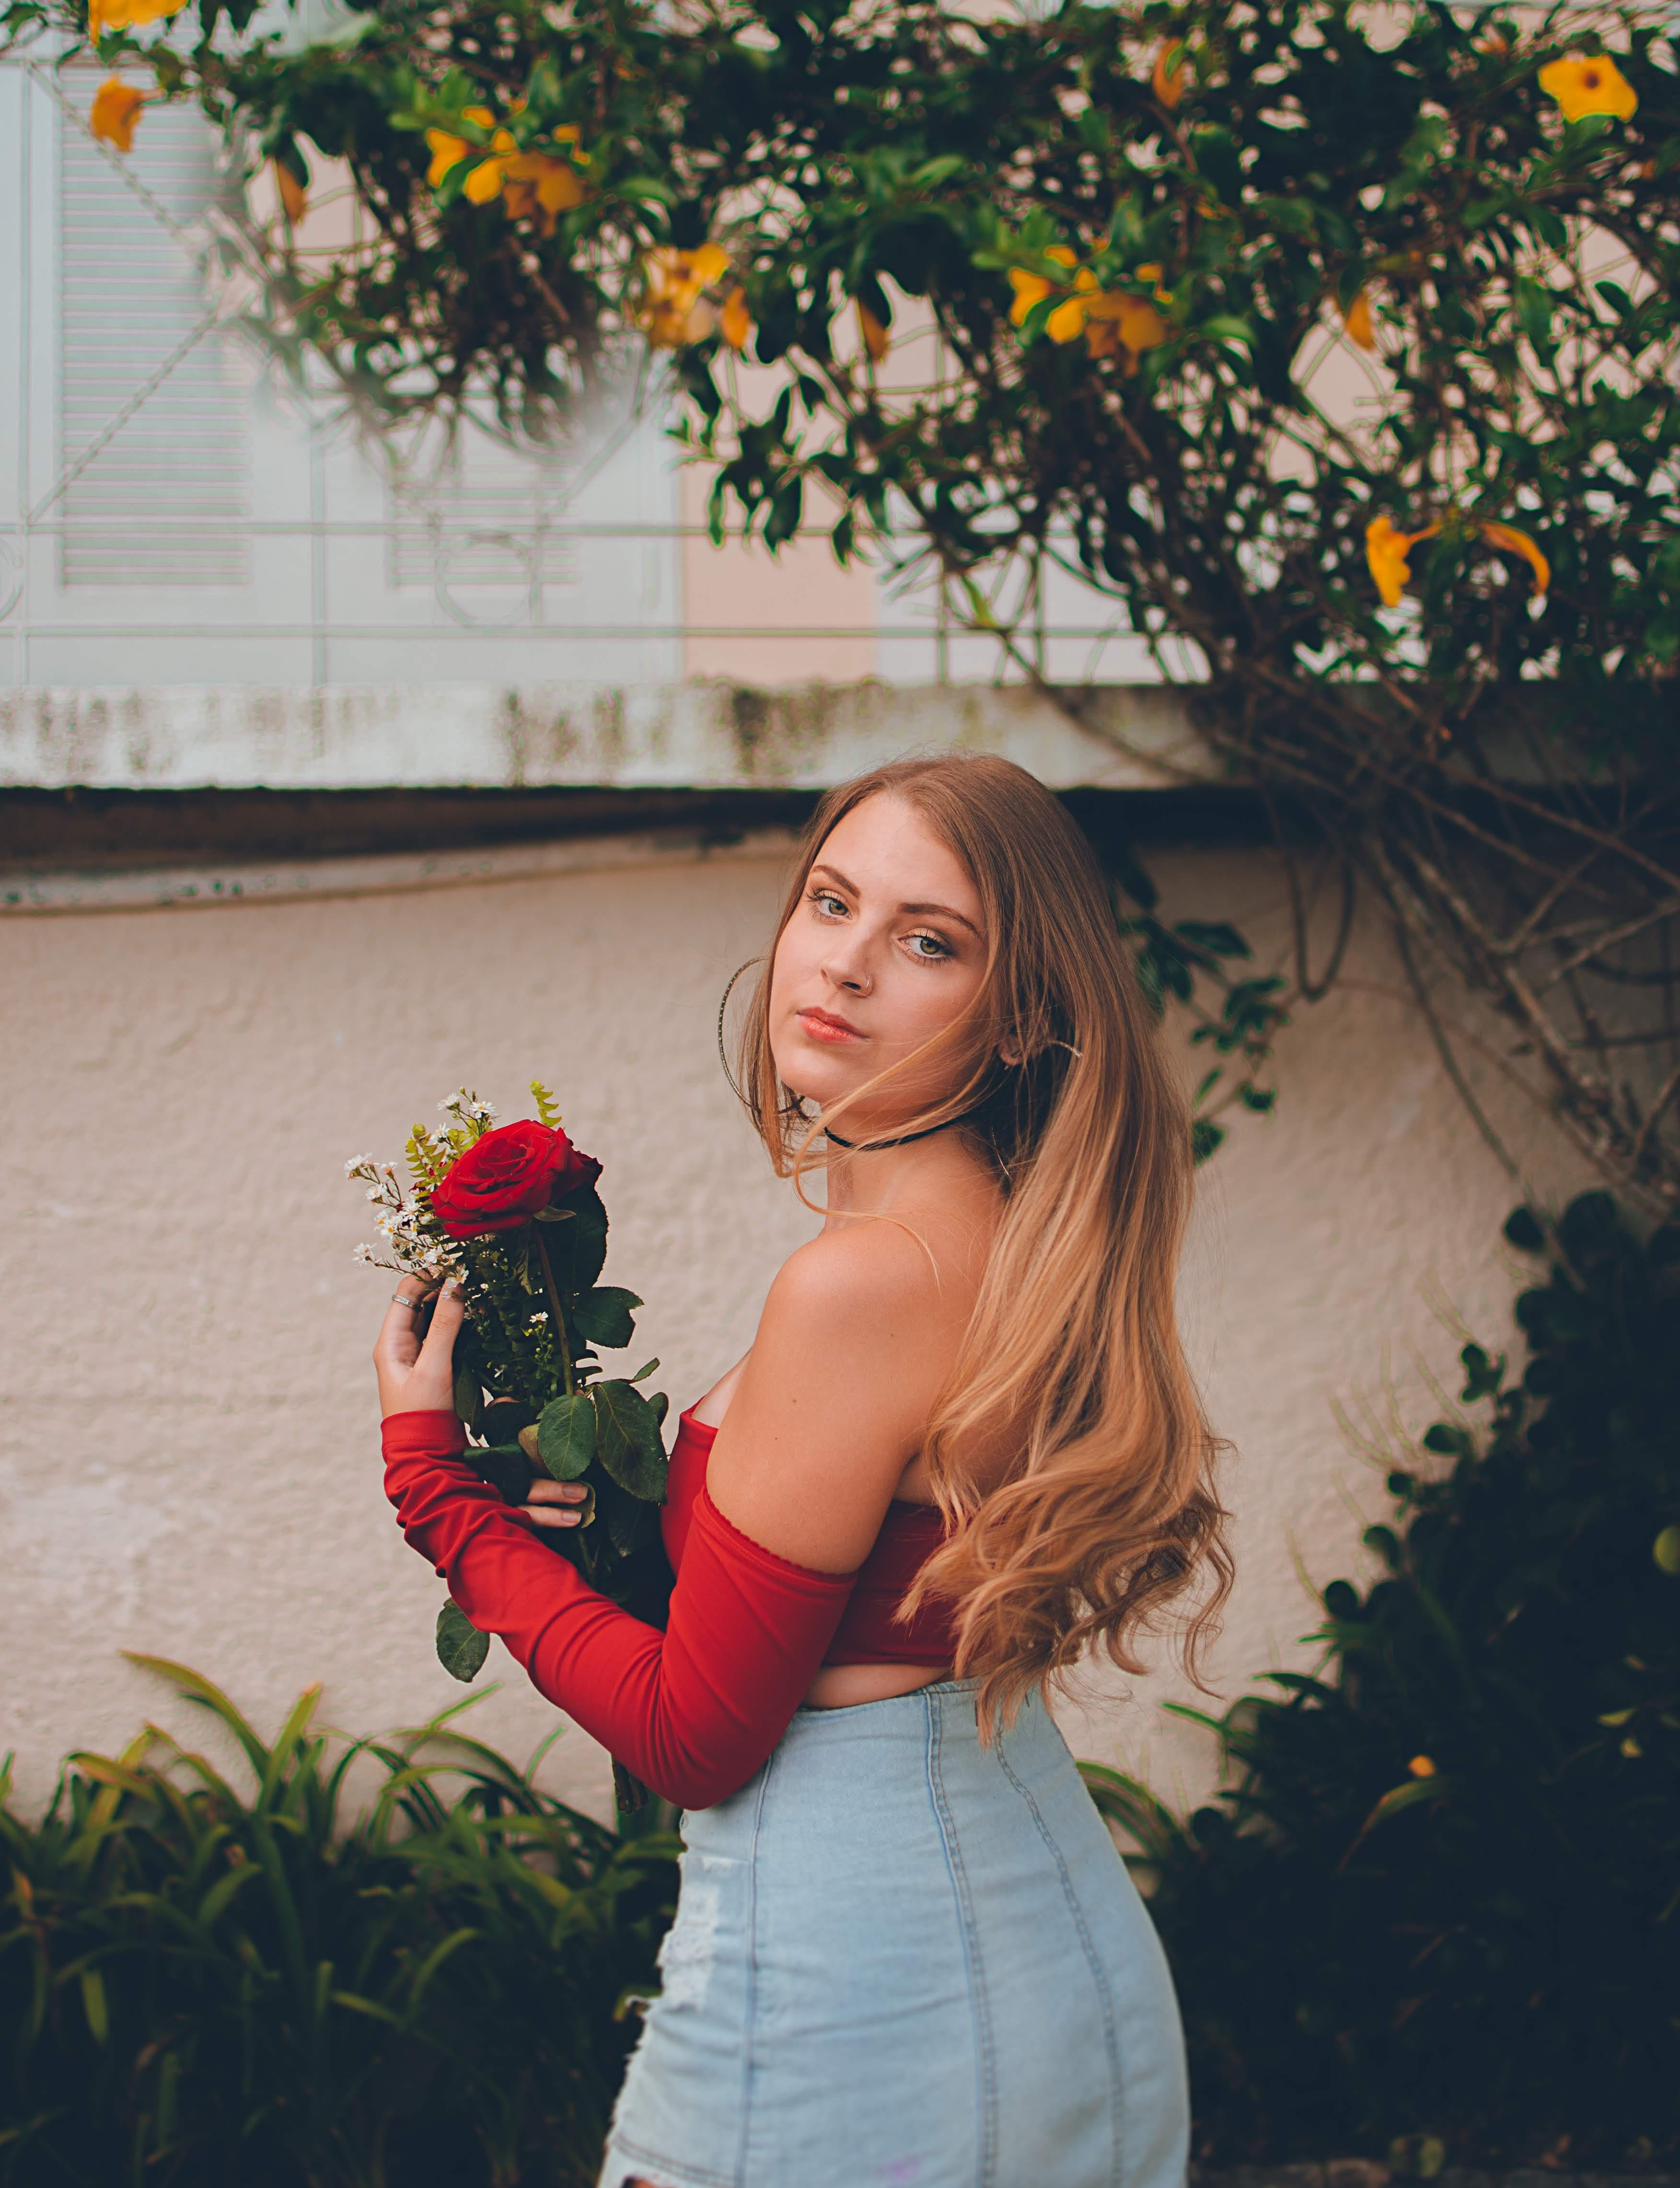 Woman in Red Off-shoulder Top Holding Flower